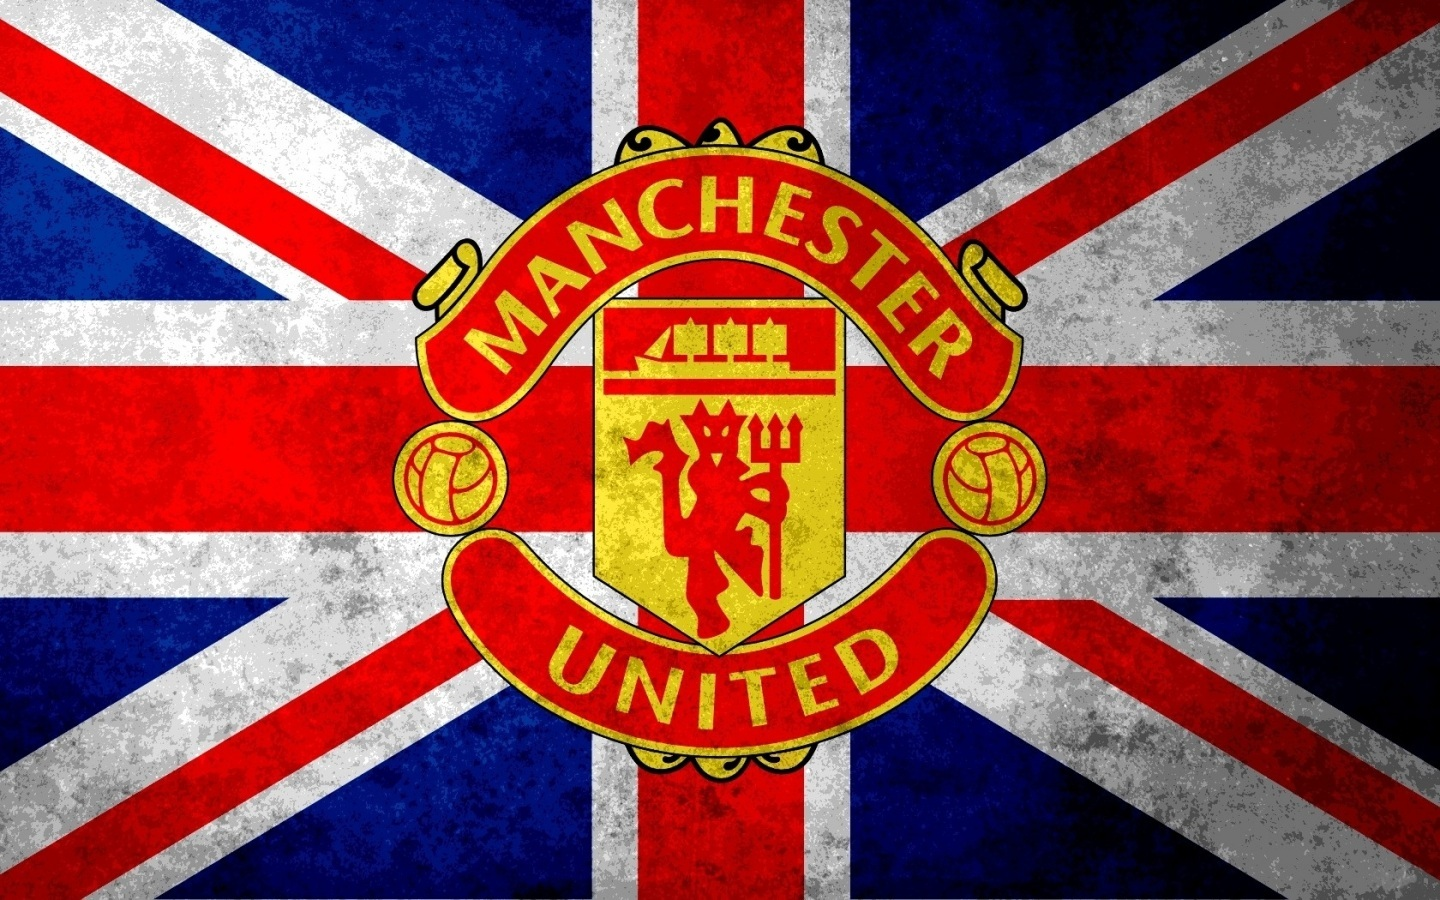 Manchester United F.C Flag 107.03 Kb